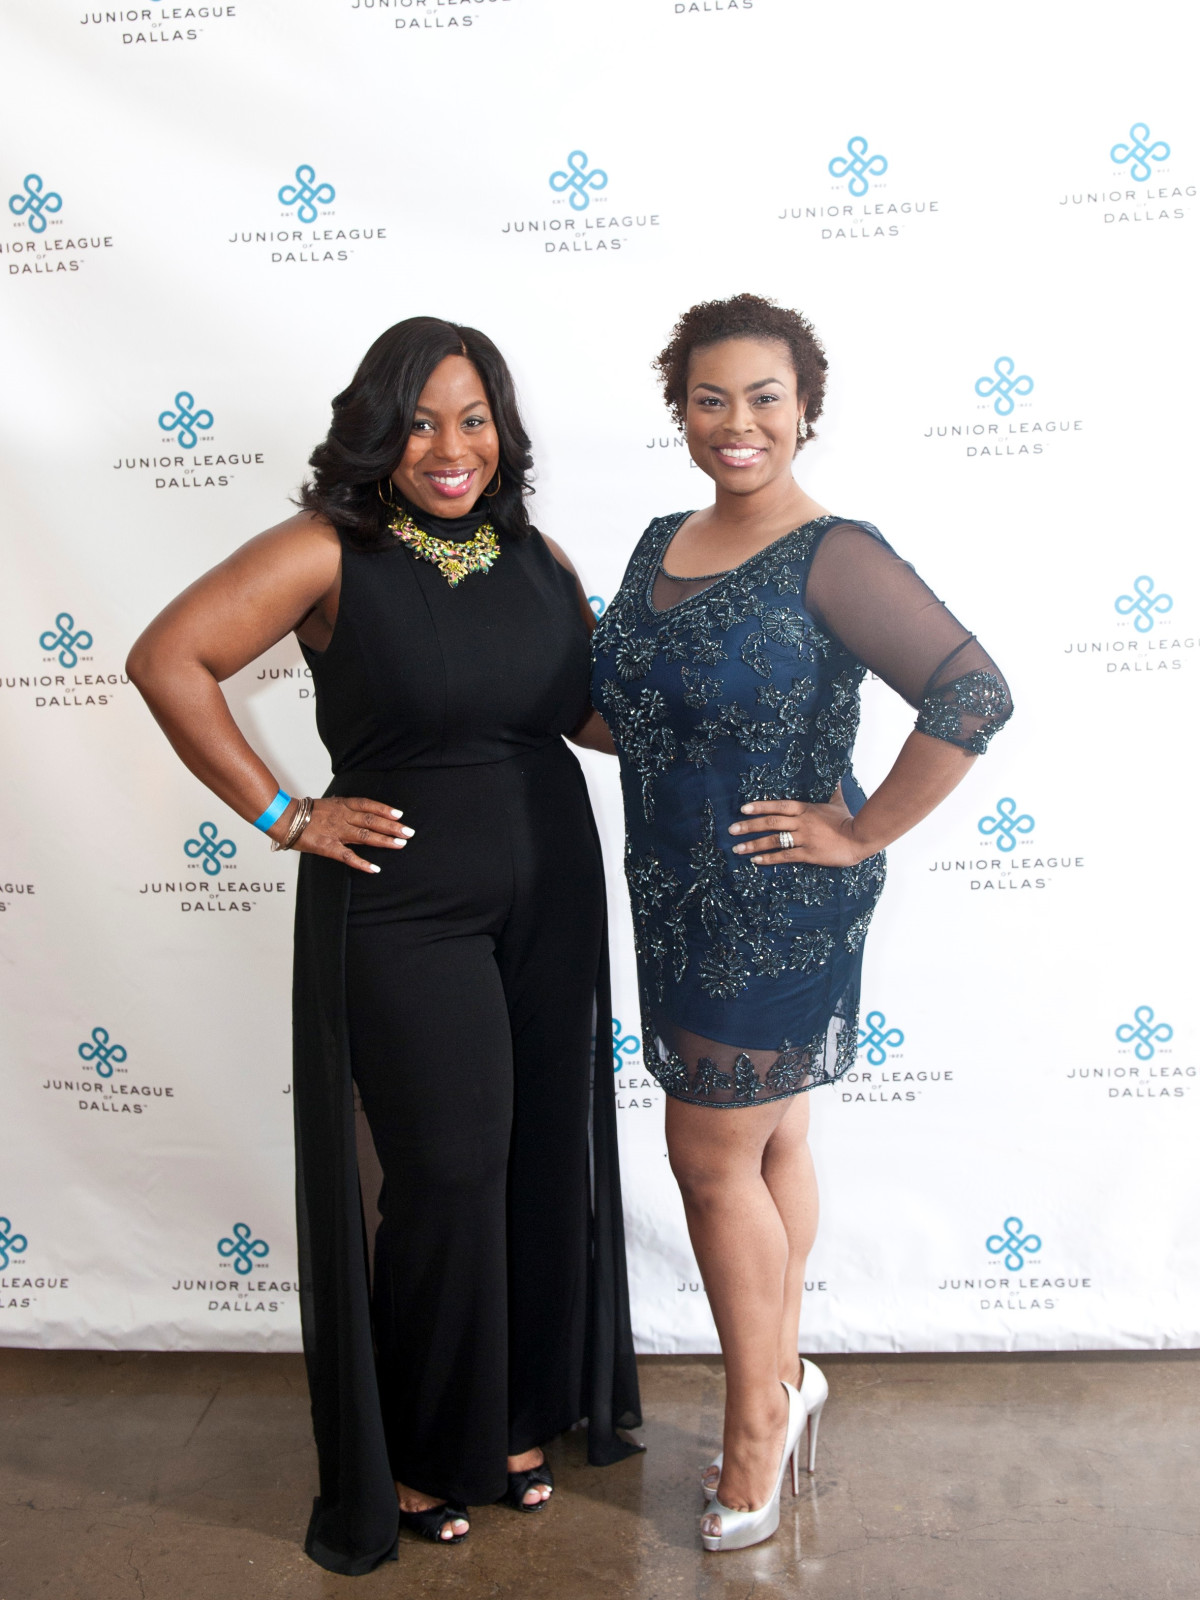 Junior League Viva Big D party 2018, Renita Garrett and Melina Mayfield